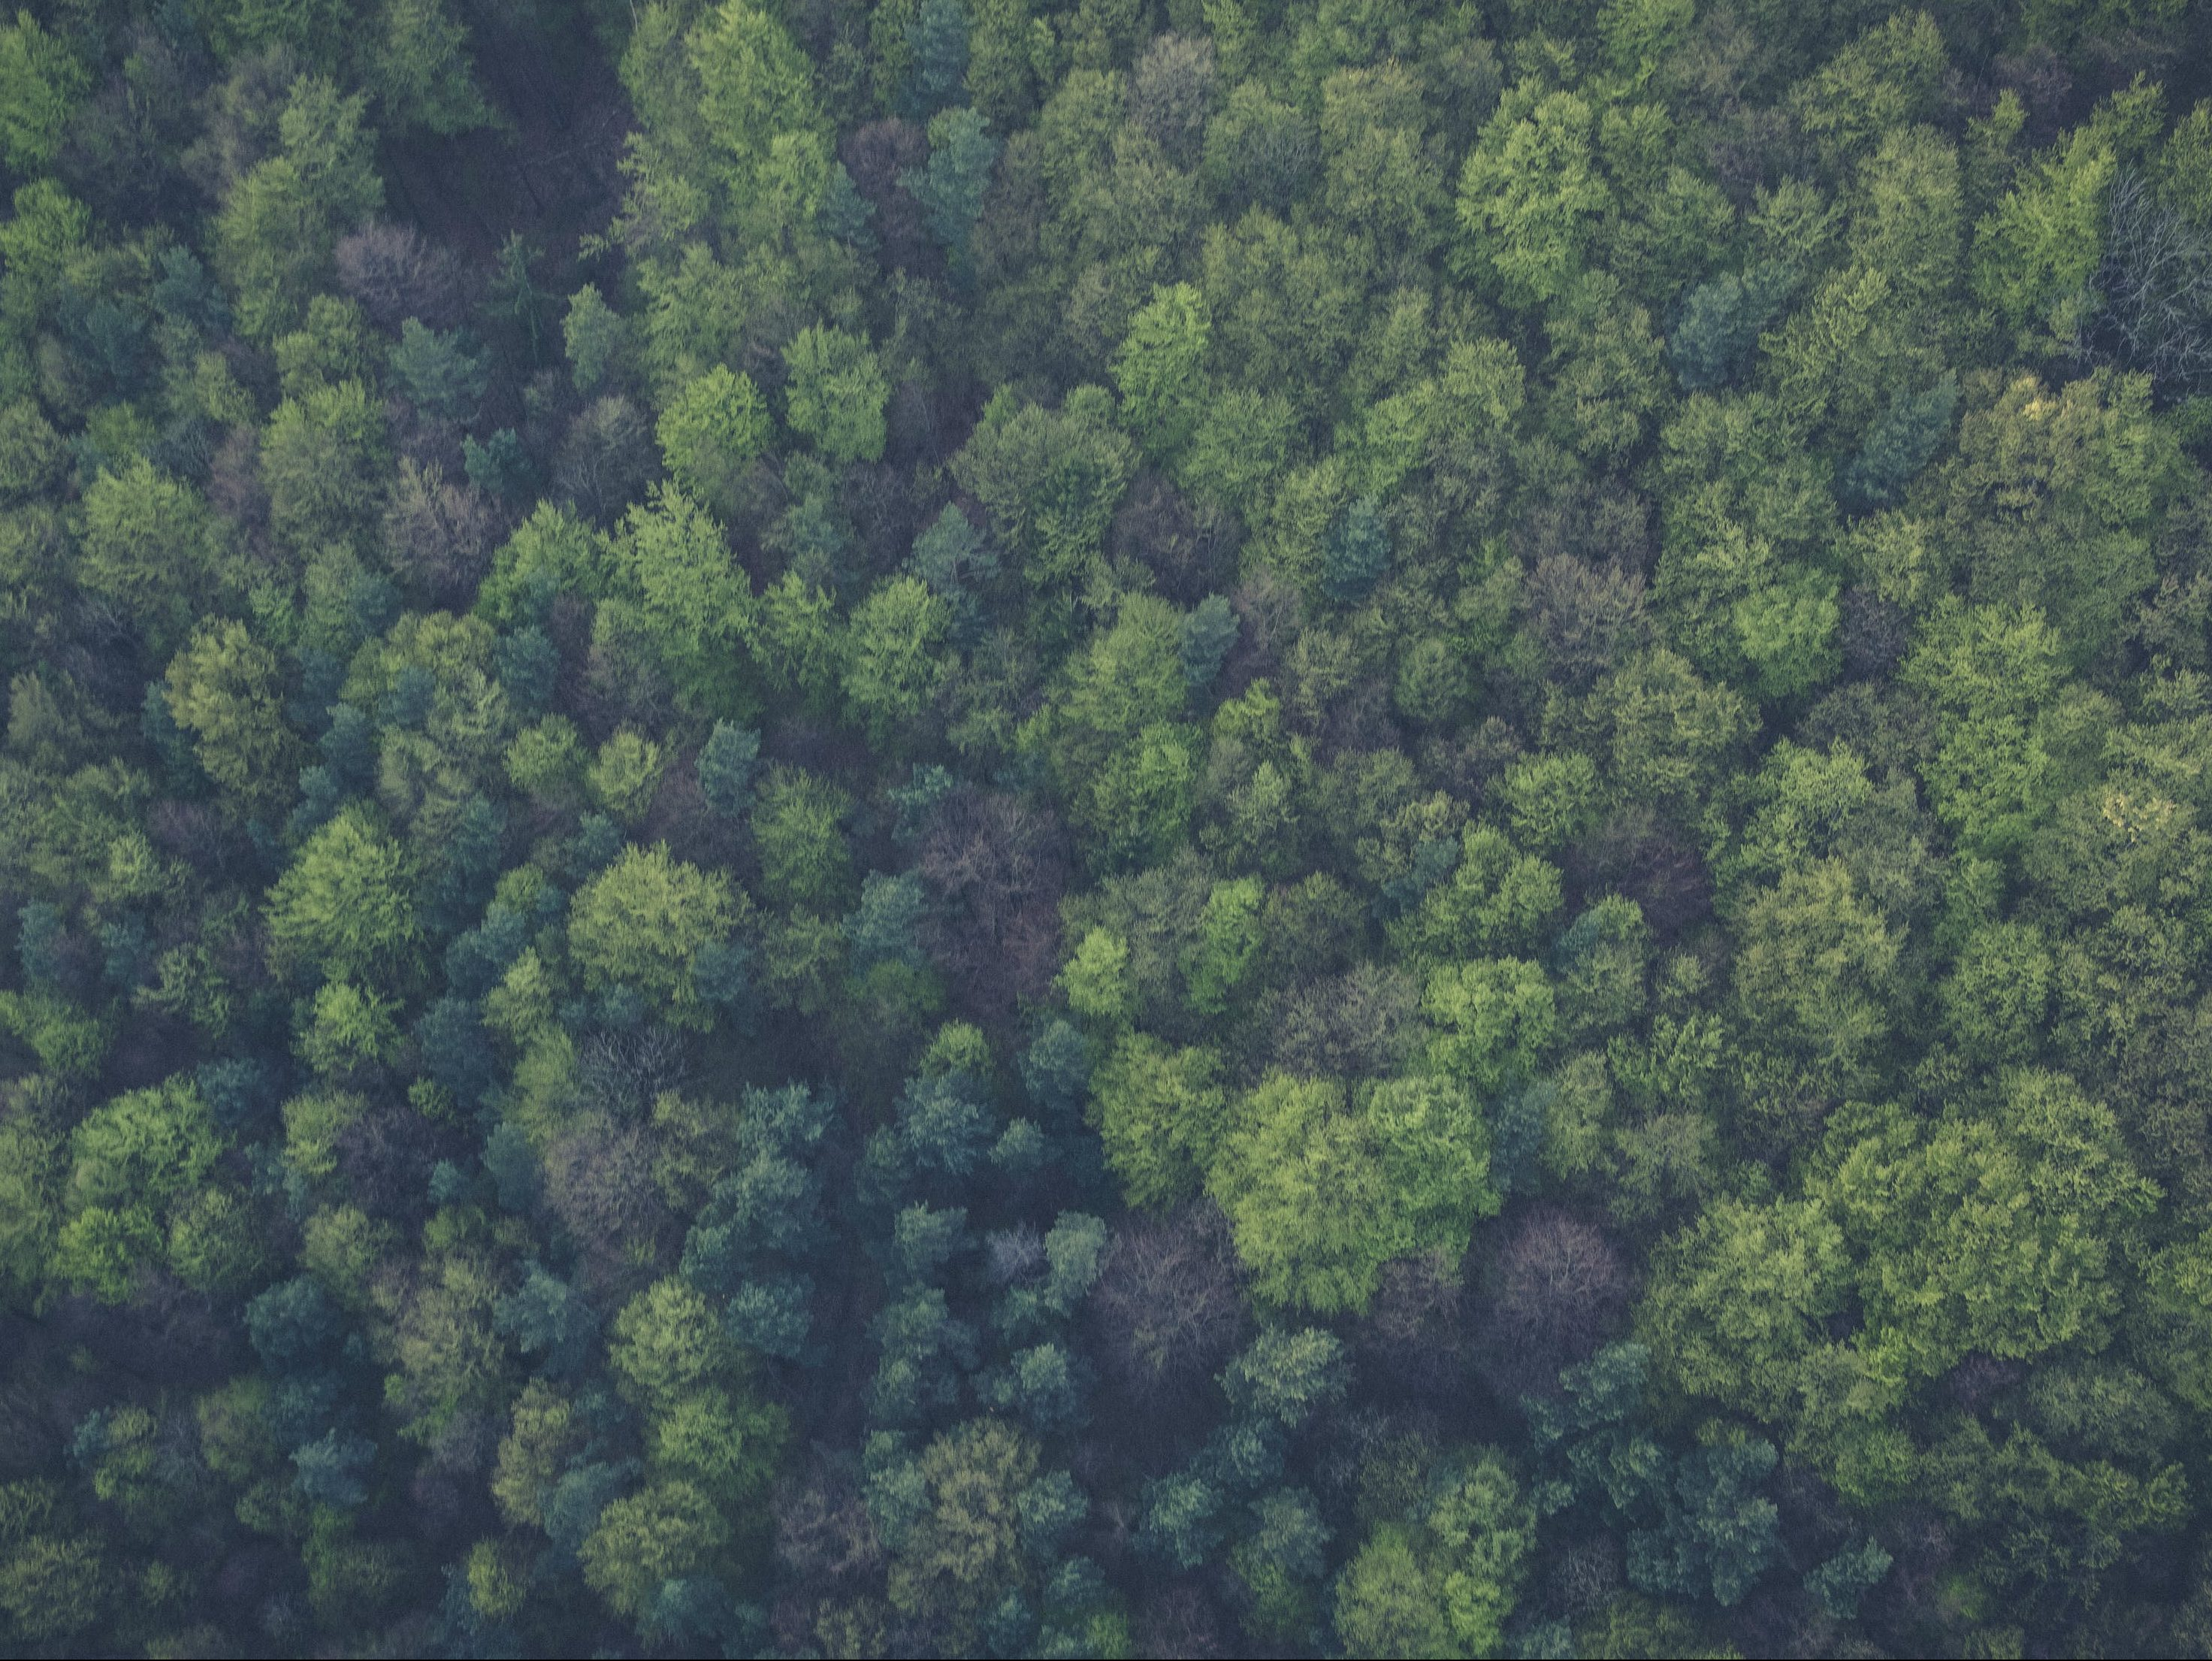 Forest from overhead